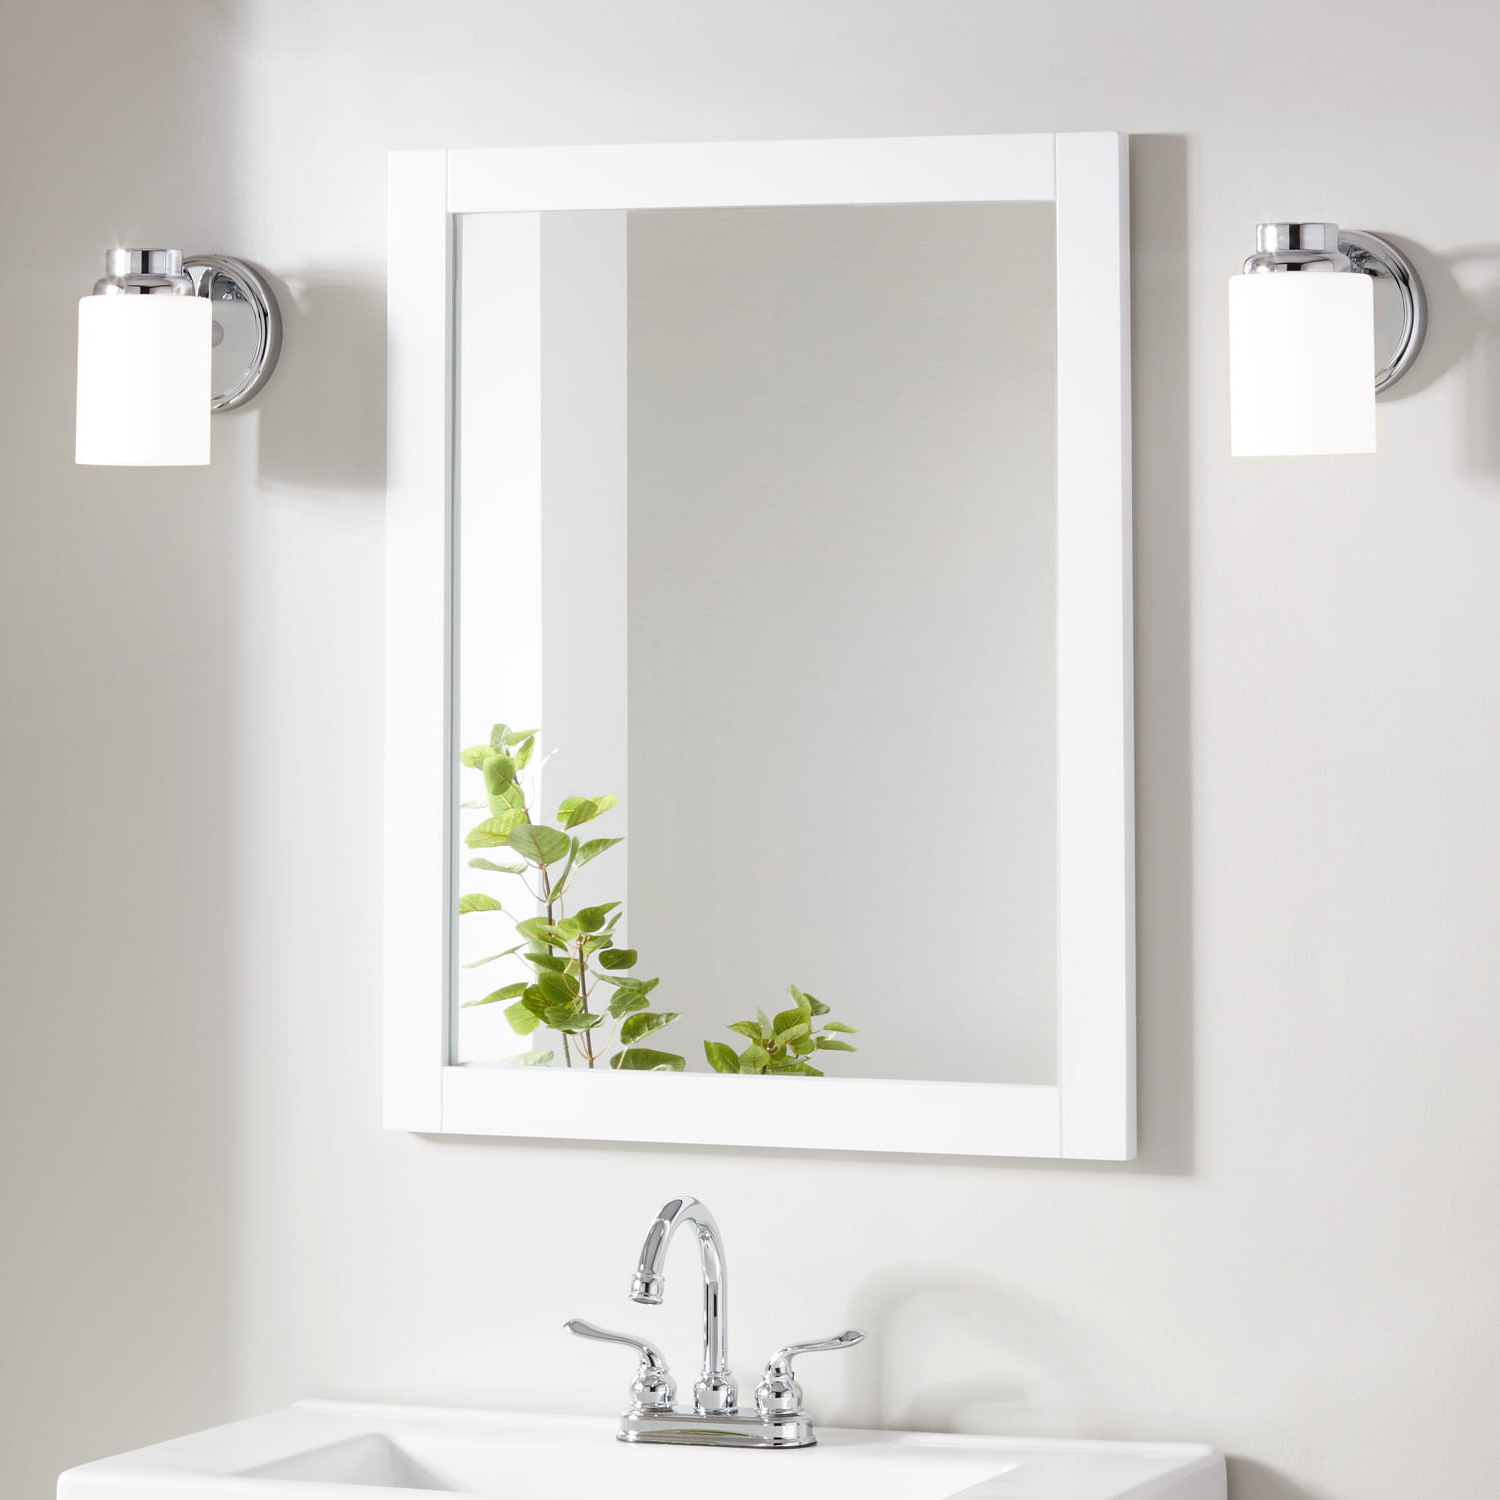 Widely Used Lander Vanity Mirror – White For White Framed Wall Mirrors (View 9 of 20)